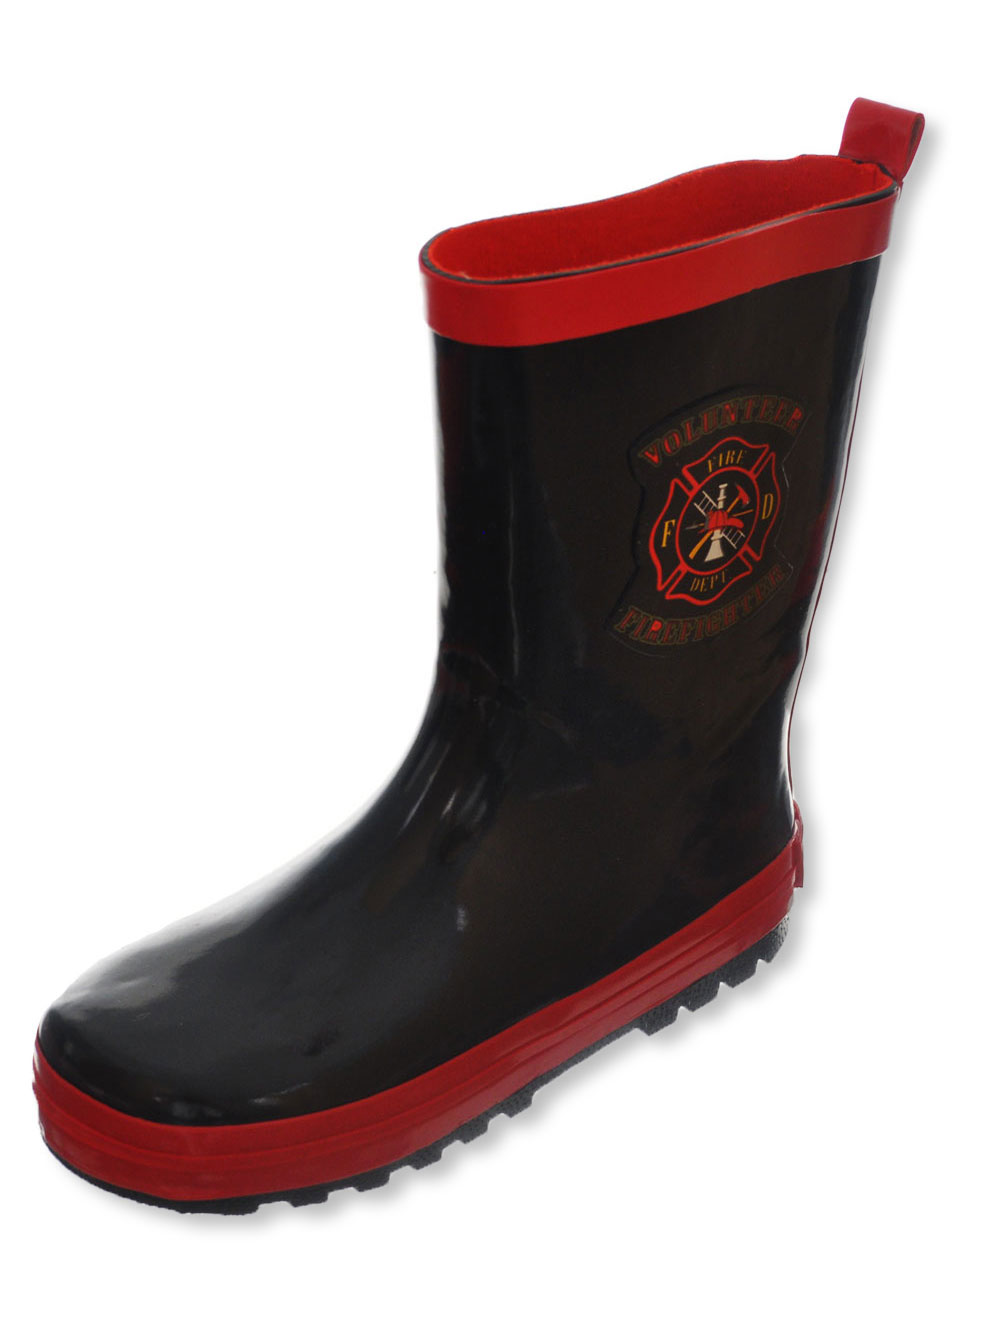 Boys Black and Red Rainboots